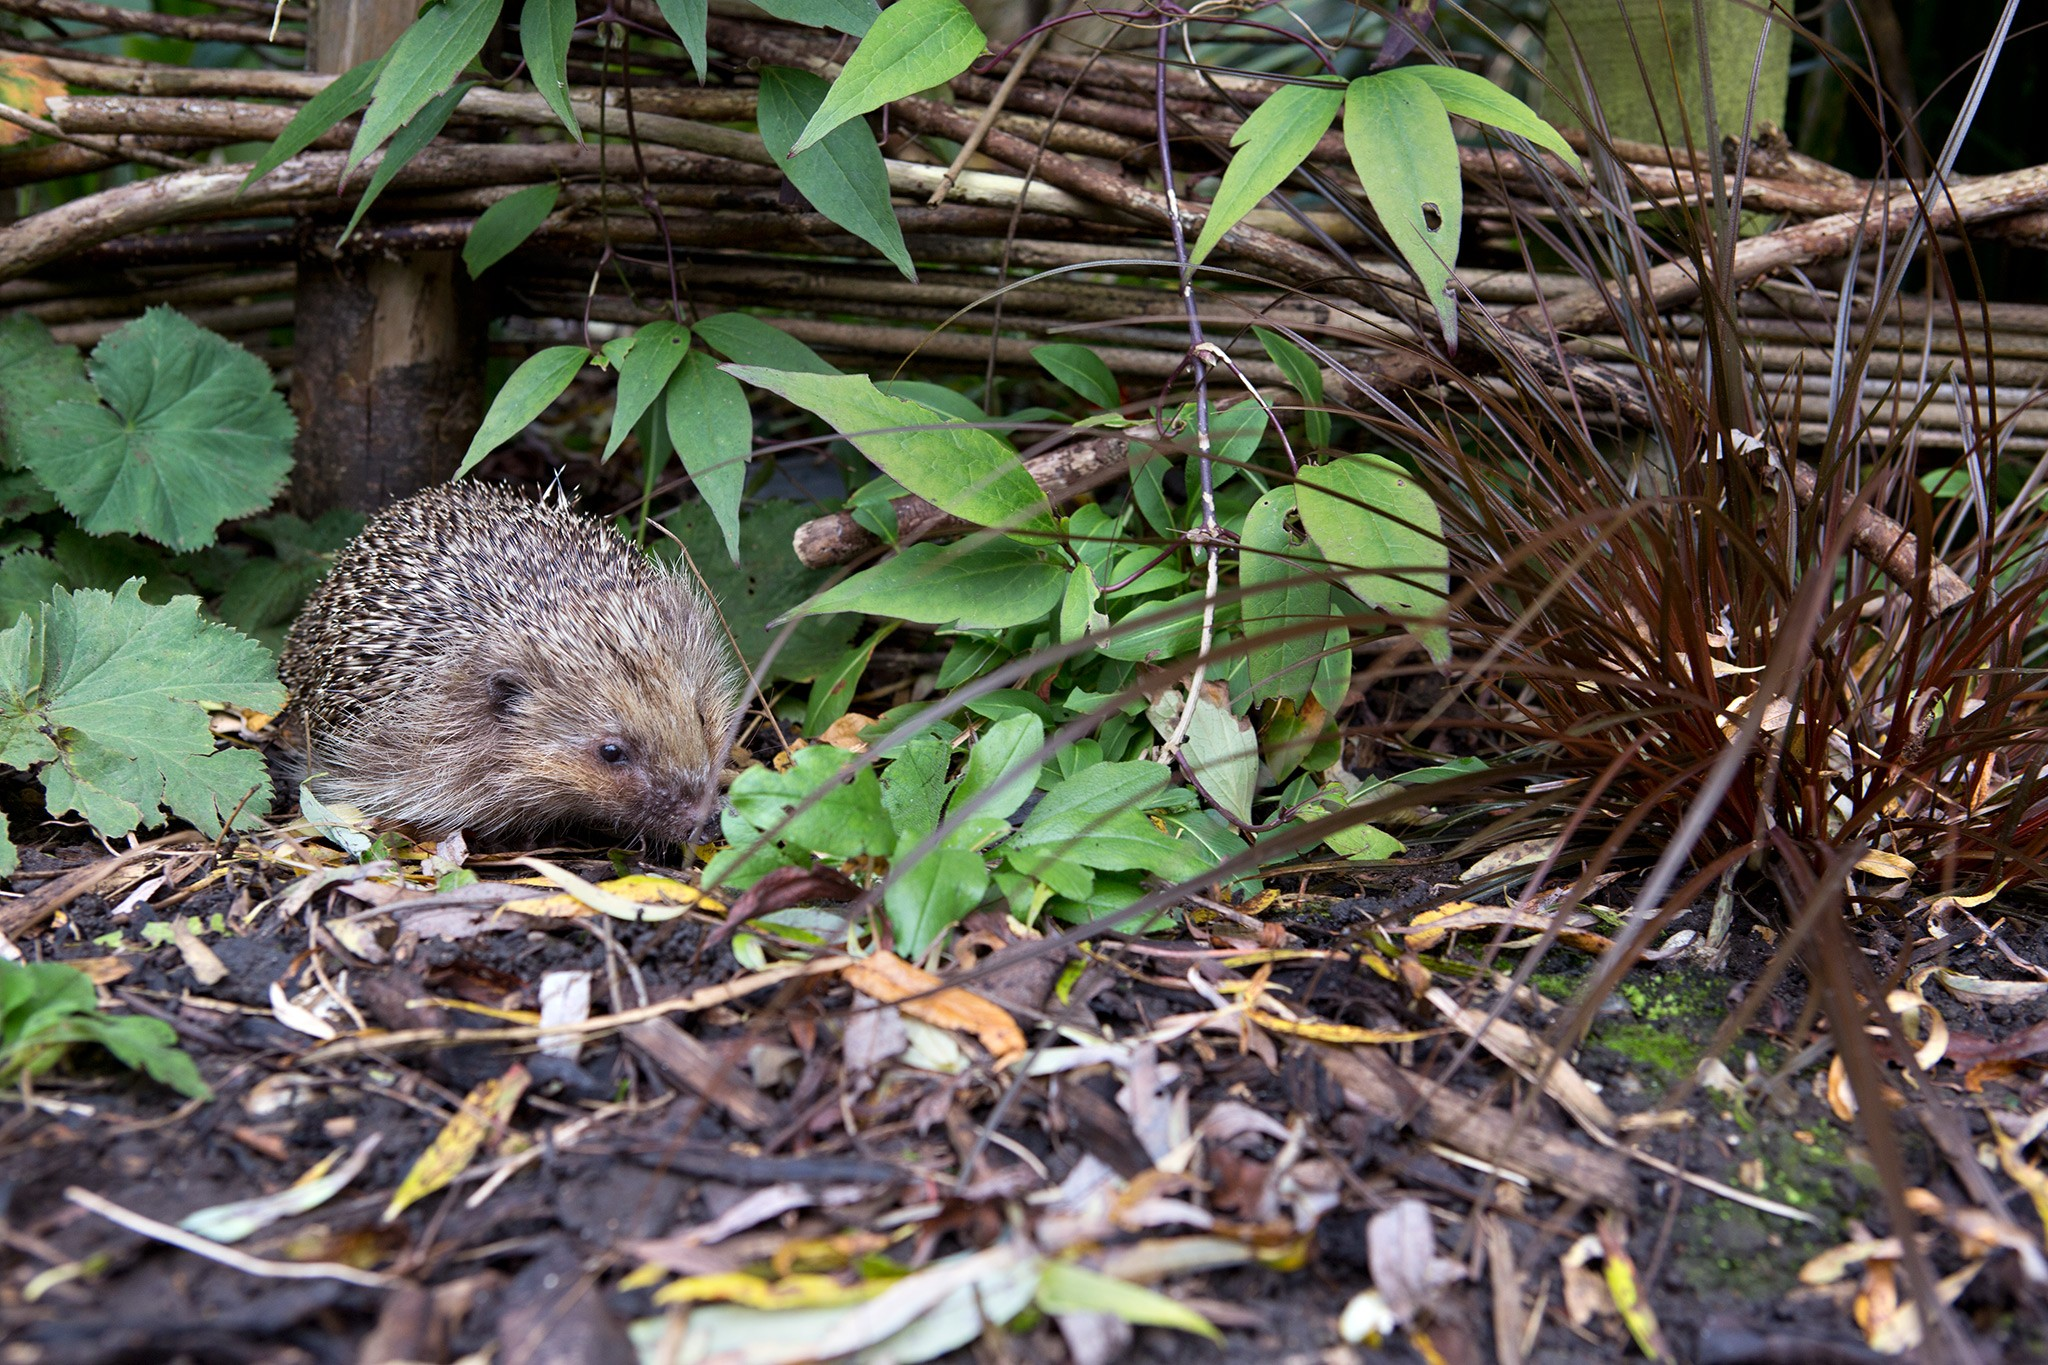 Hedgehog in a garden